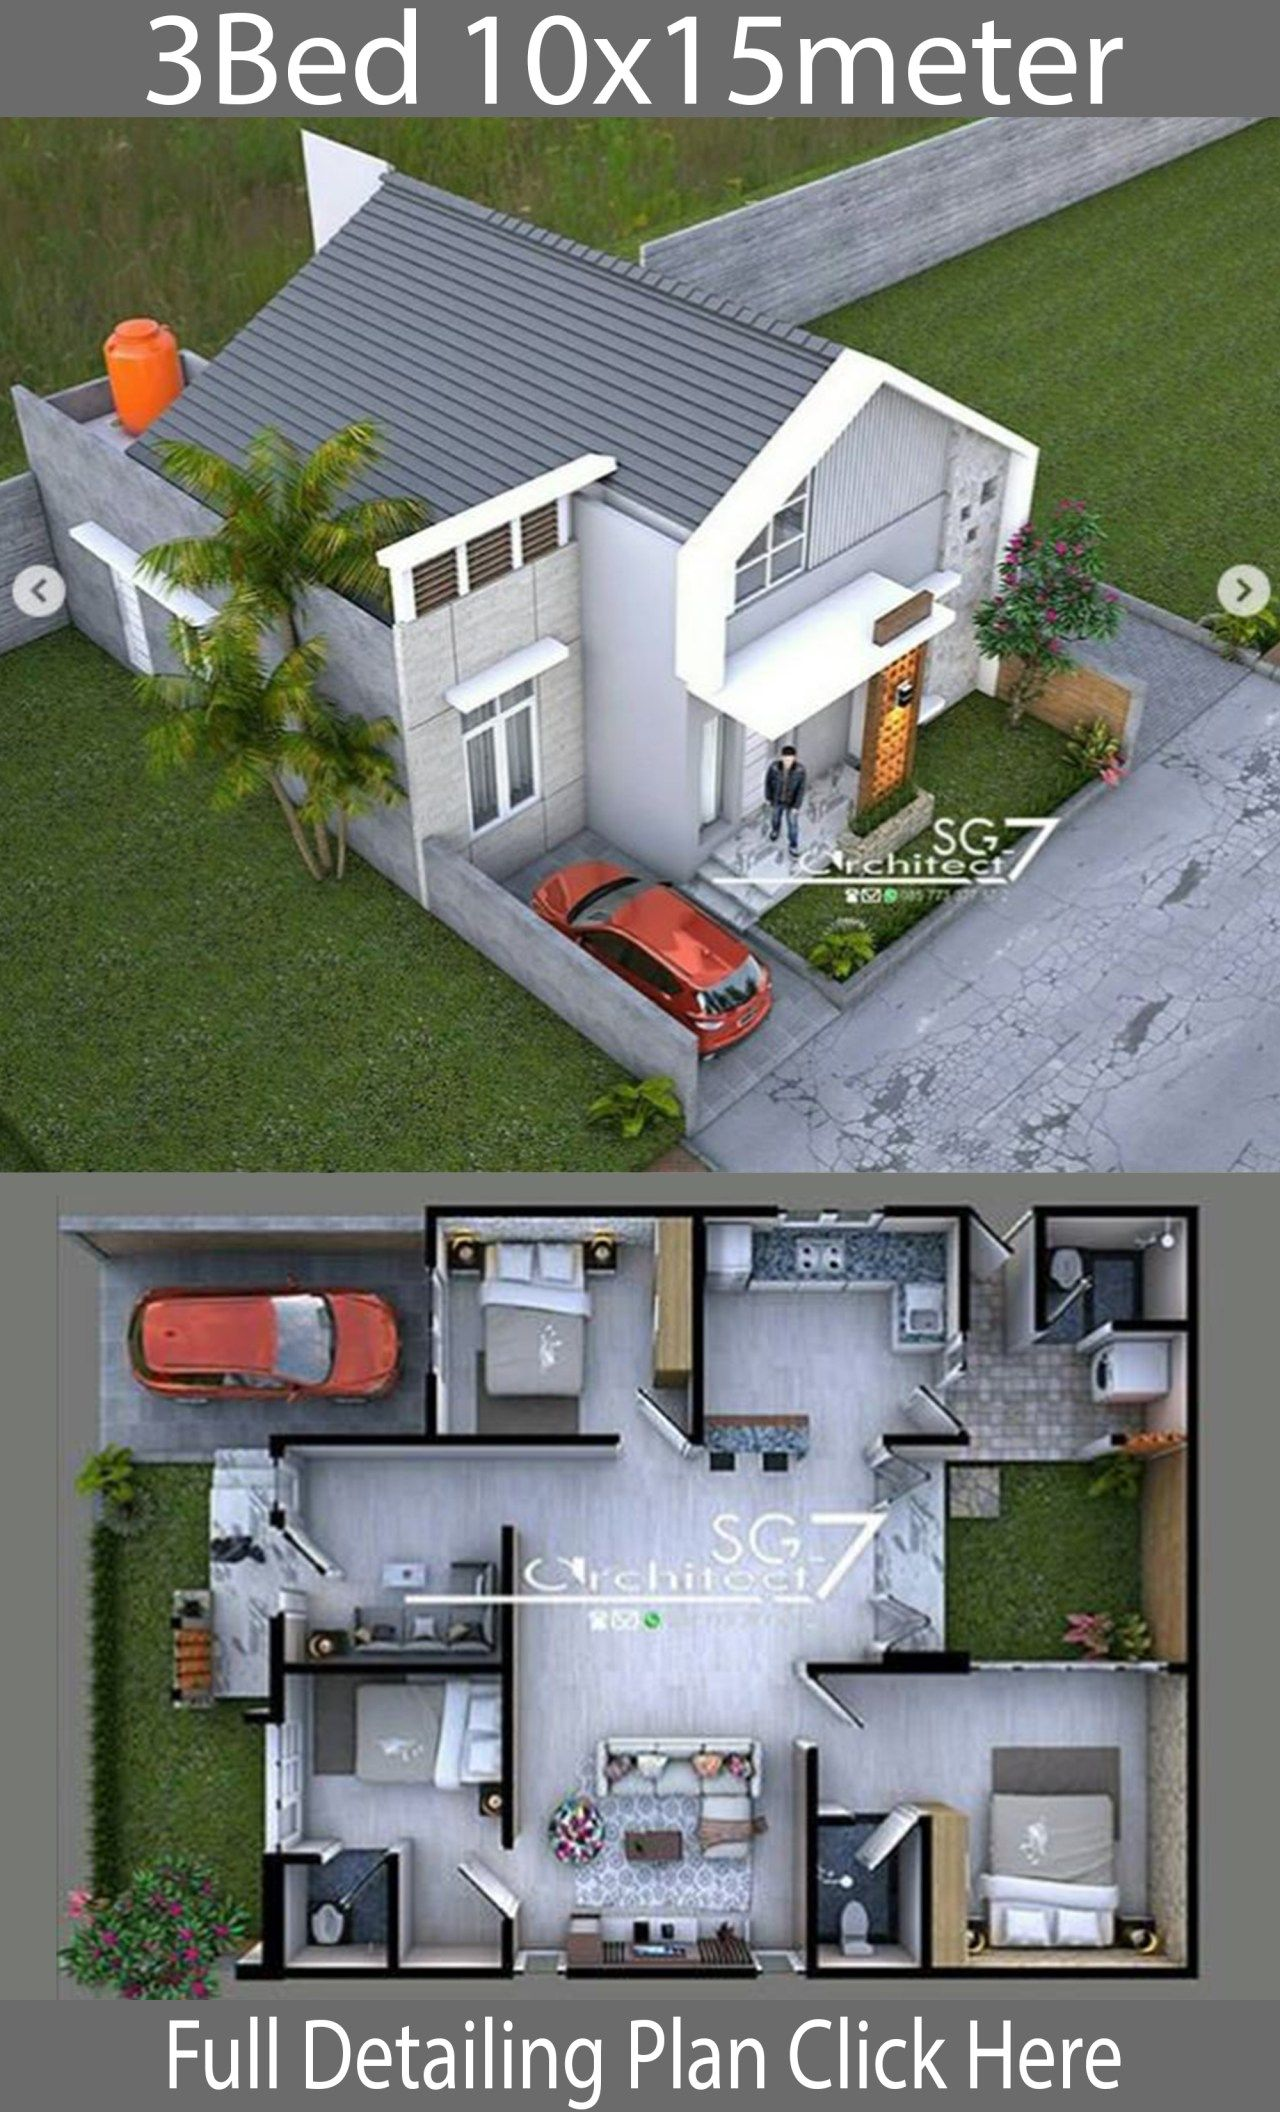 3 Bedrooms Home Design Plan 10x15m Home Ideas Home Design Plan Home Building Design Modern House Plans